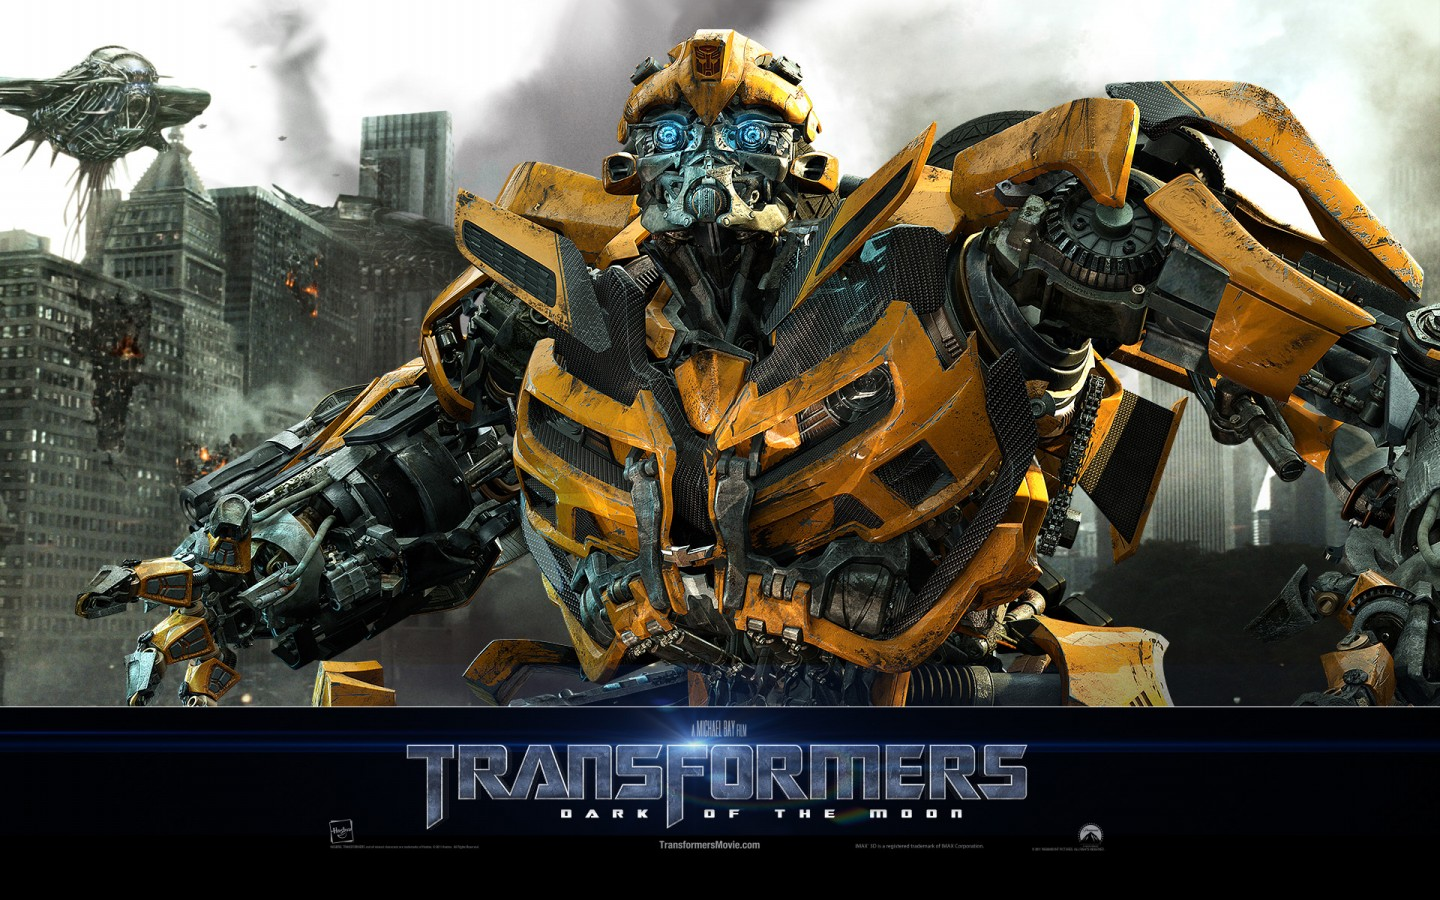 Bumblebee Transformers 3 Pictures HD Wallpaper of Movie 1440x900